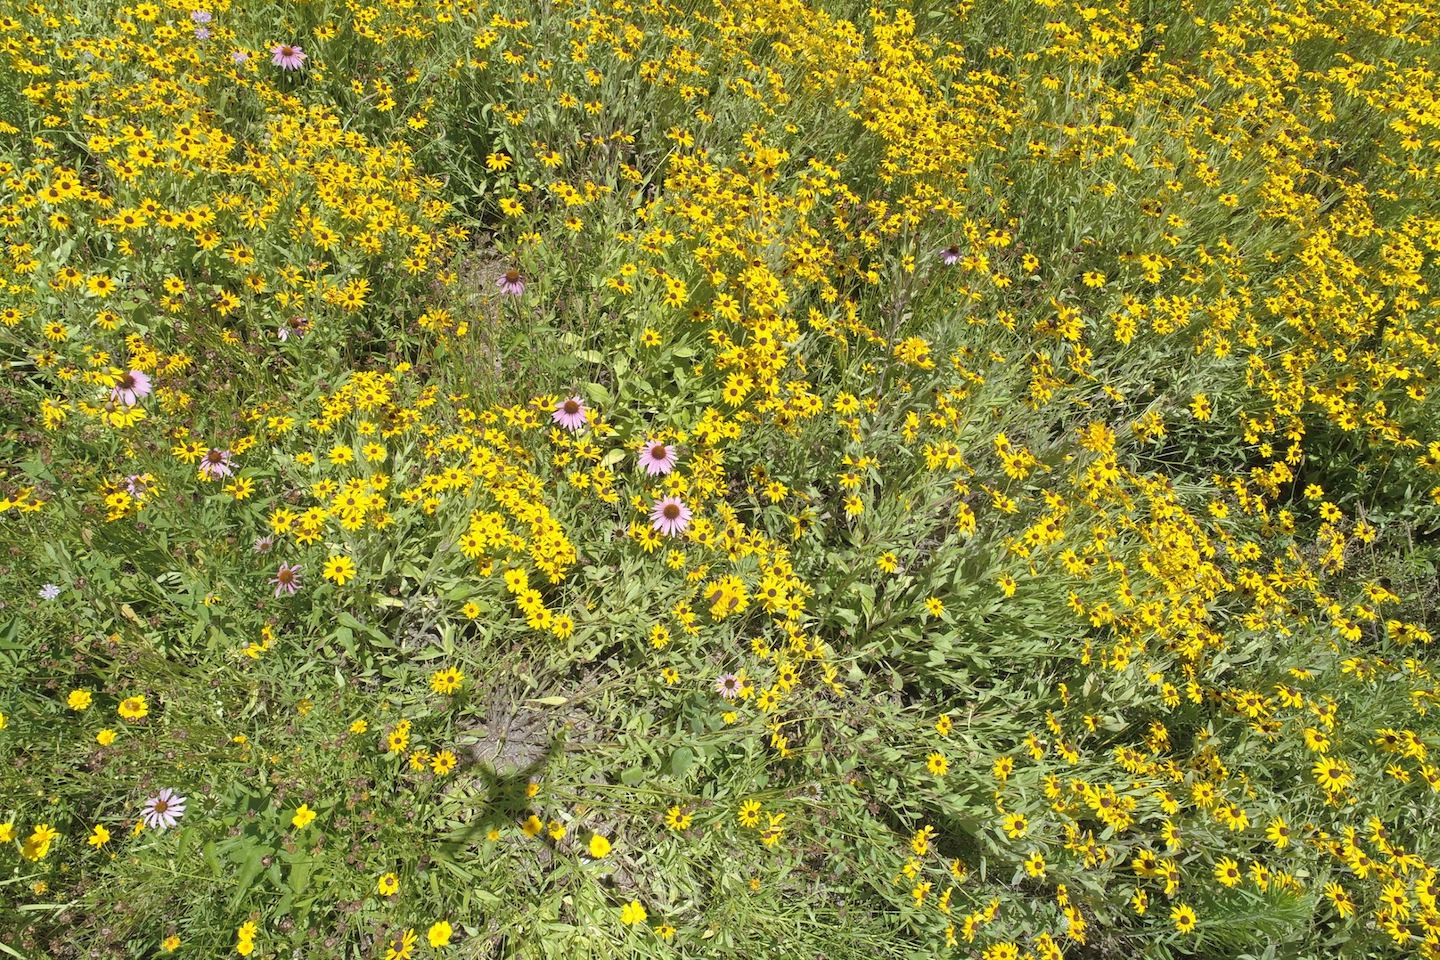 Austin Peay, TDOT partner on pollinator project at I-24's Exit 1